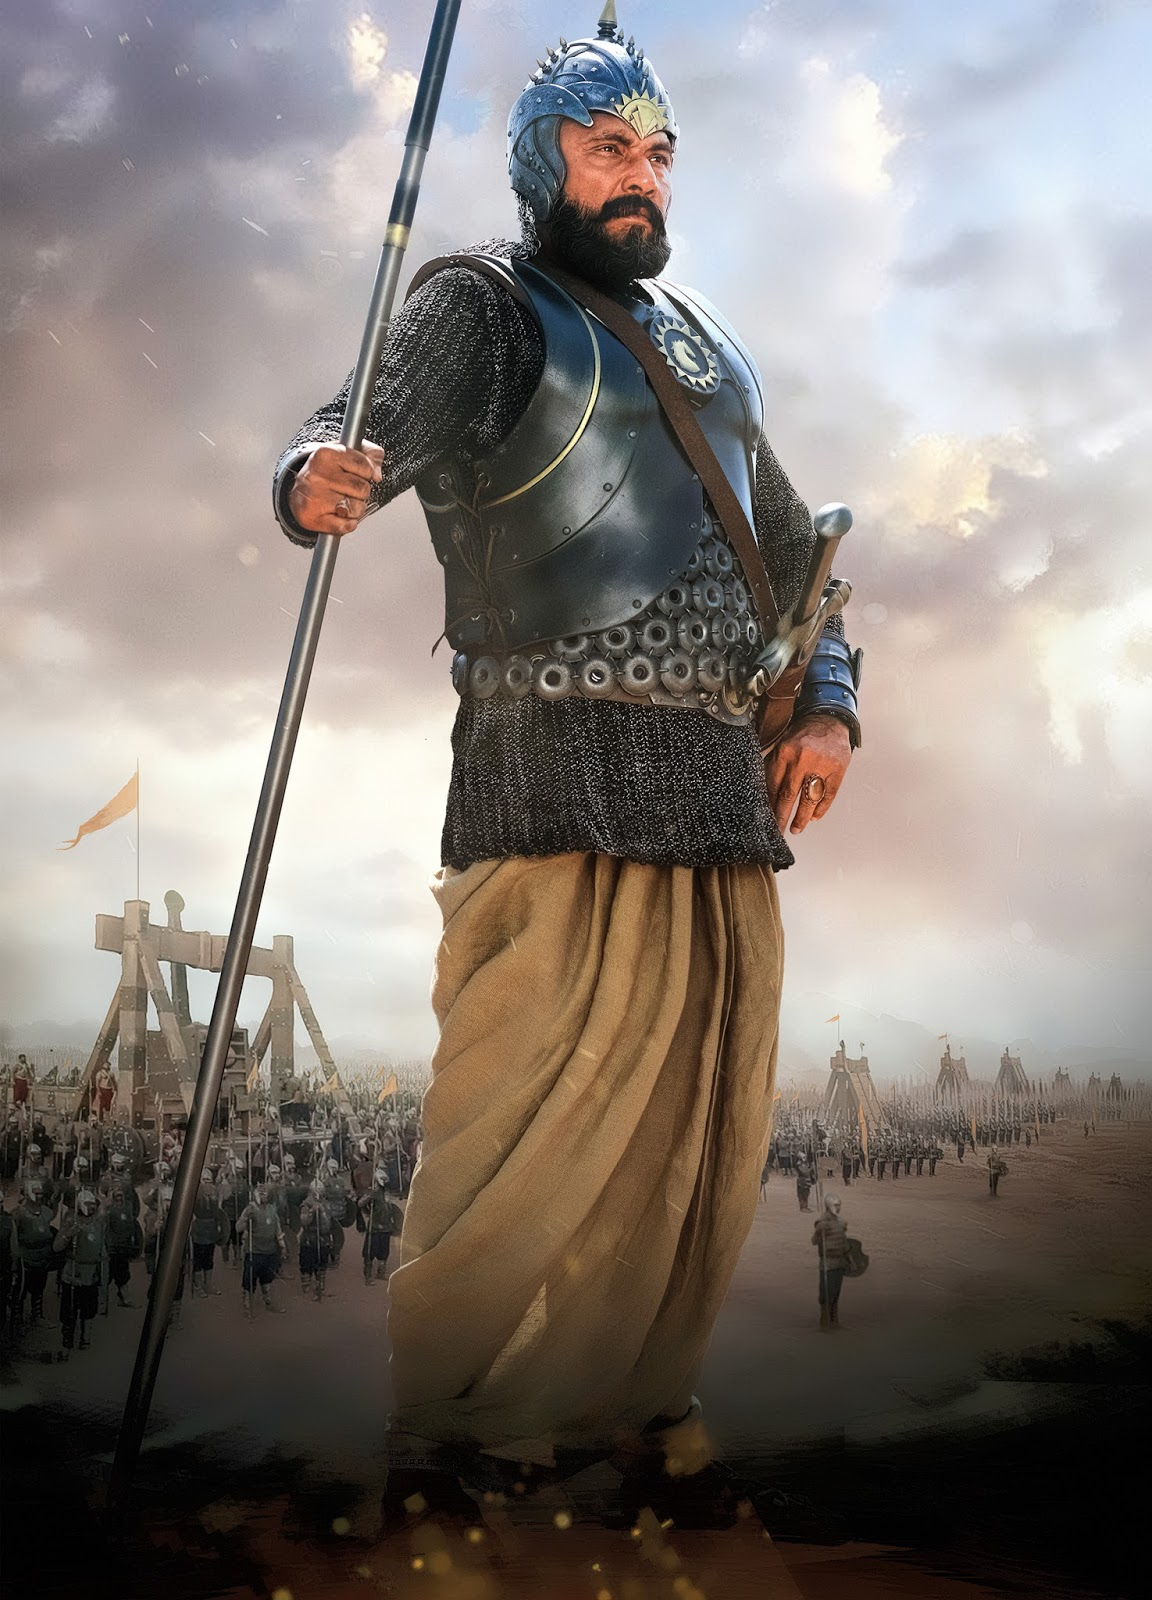 Bahubali HD Wallpapers | HD Wallpapers (High Definition) | Free Background